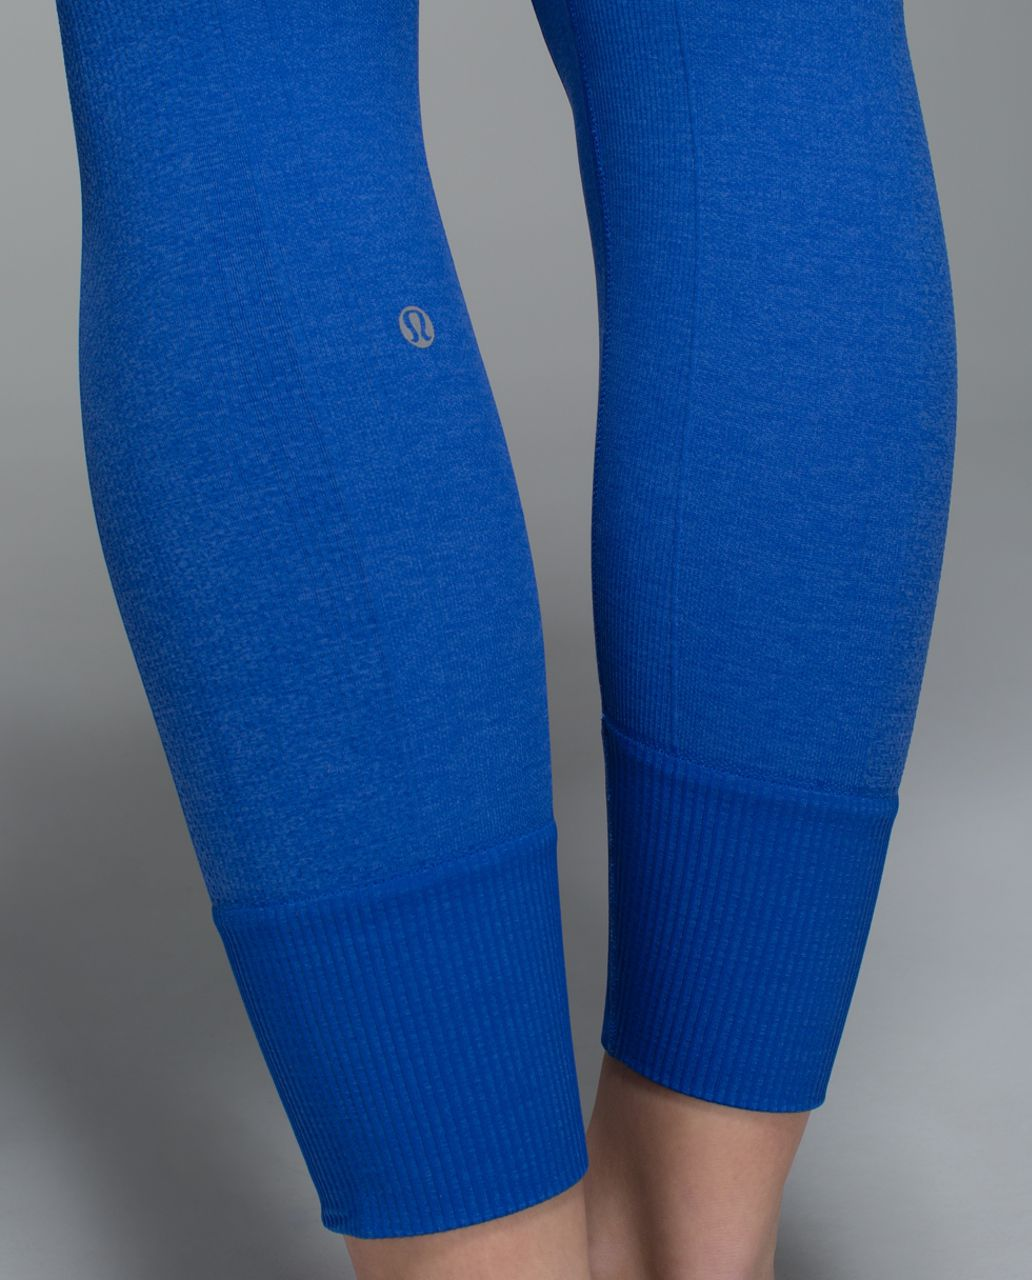 Lululemon Ebb To Street Pant - Heathered Harbor Blue